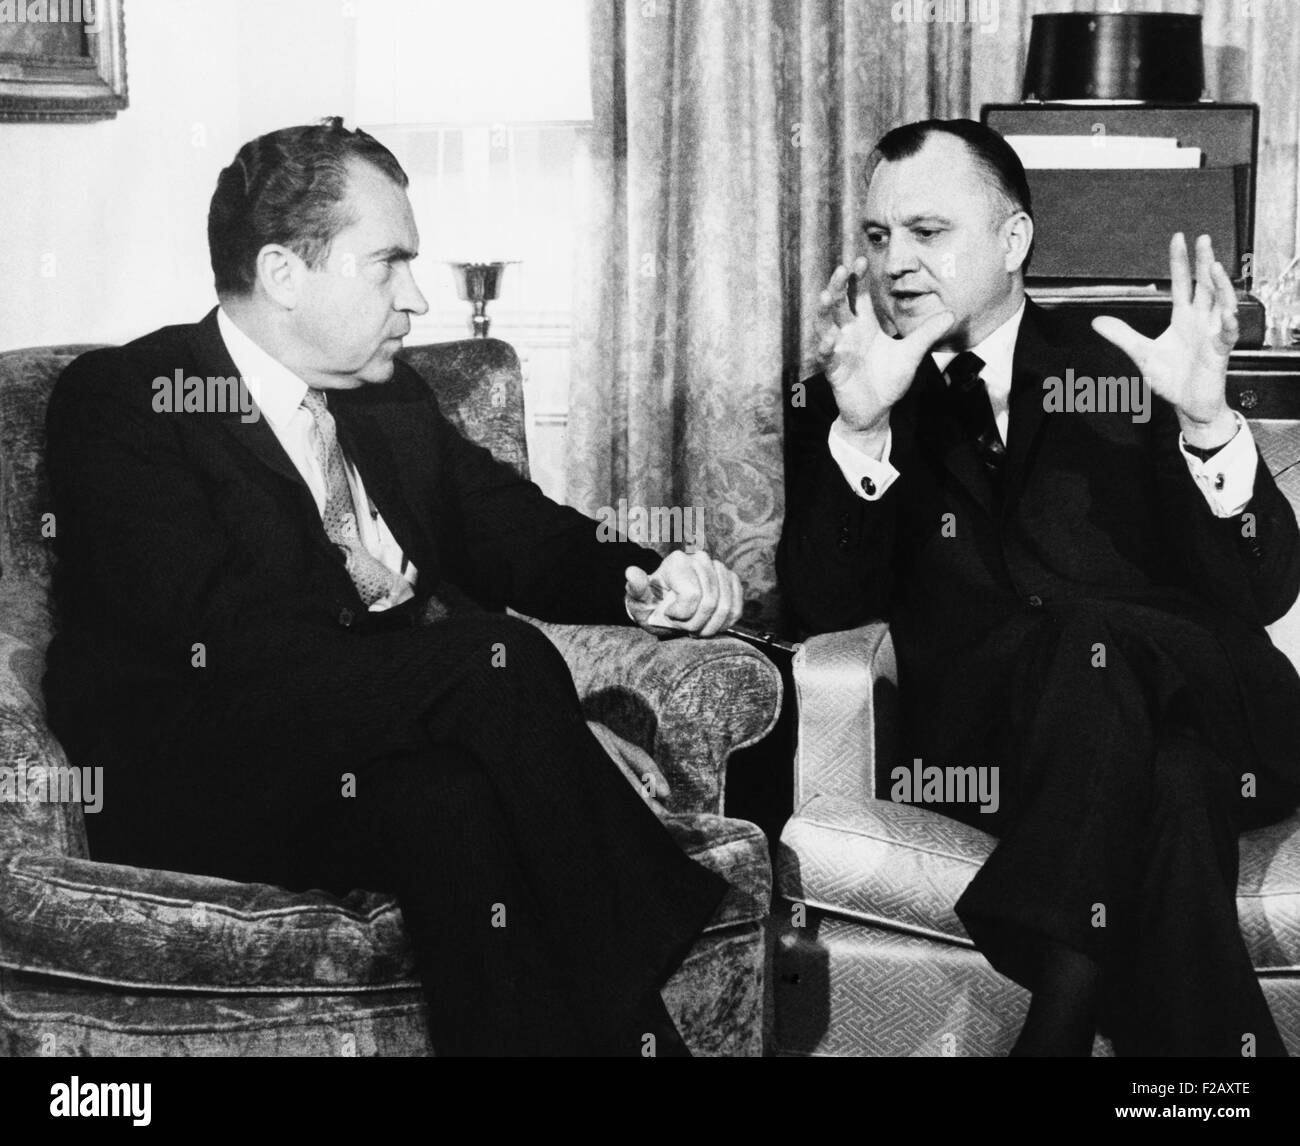 President-elect Richard Nixon with Walter Hinkle, Dec. 19, 1968. Hinkle reluctantly resigned as Alaska's governor - Stock Image